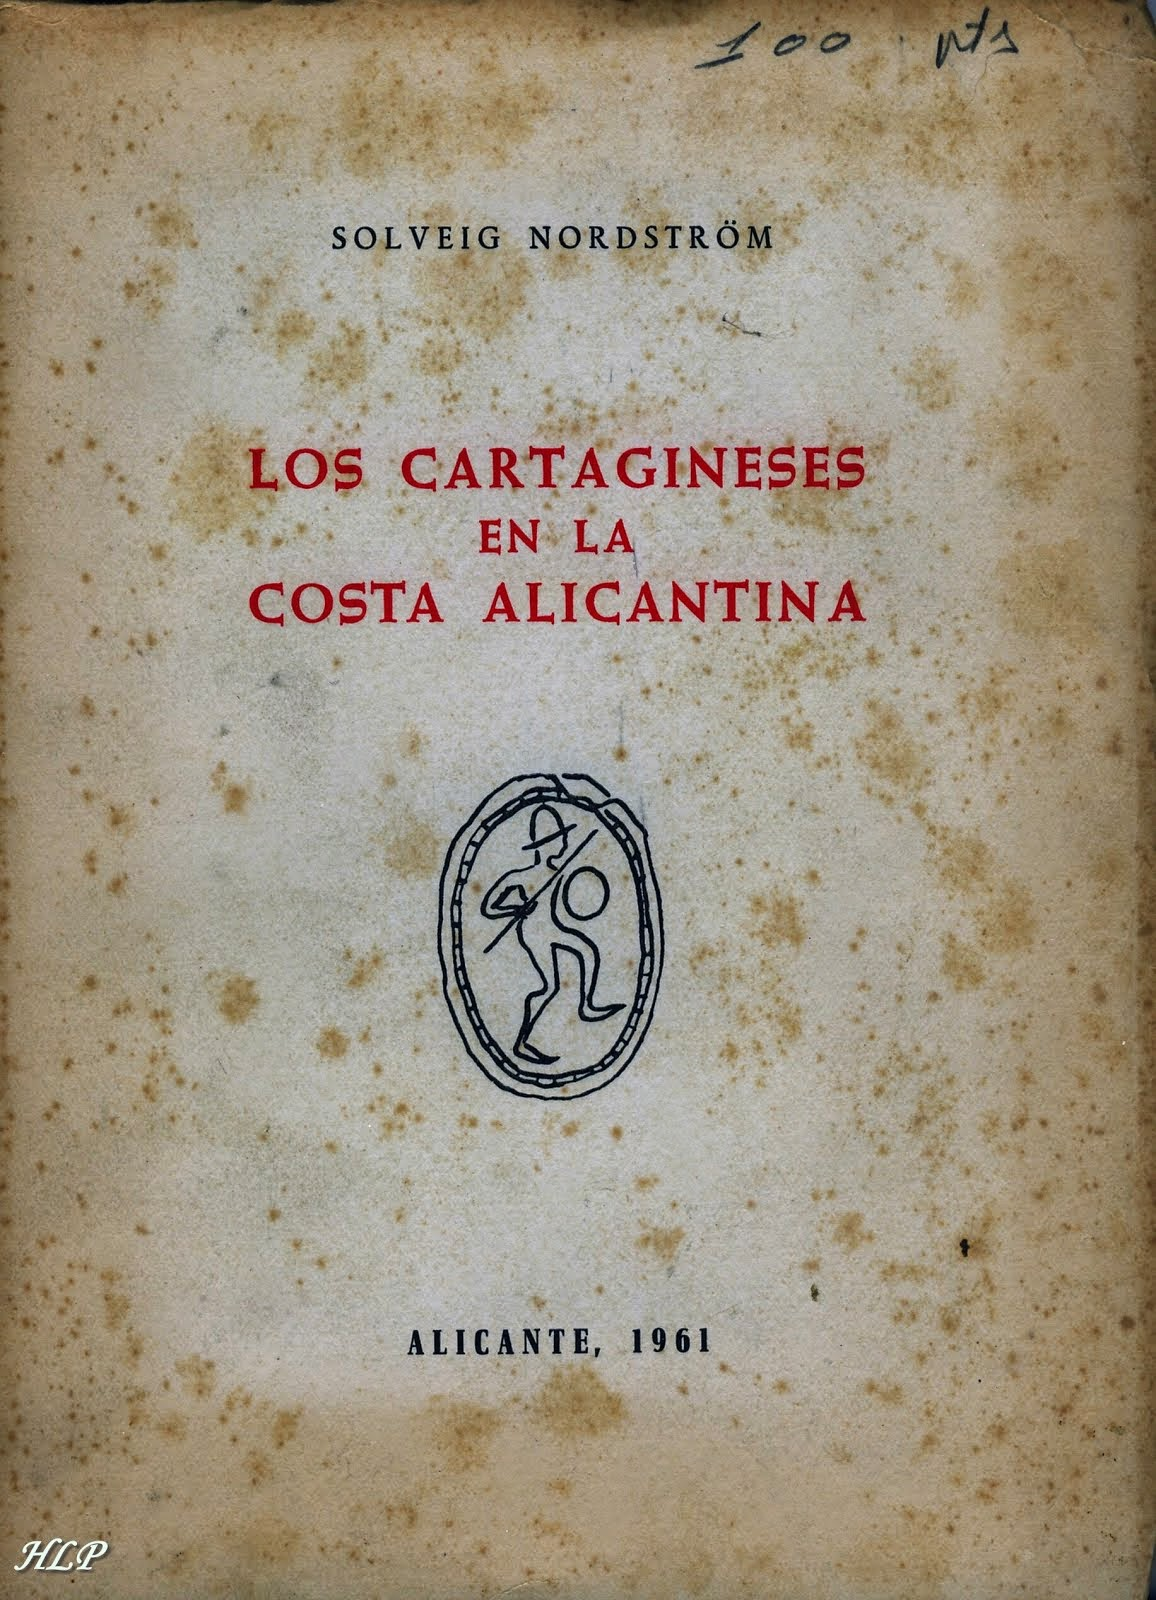 Los cartagineses en la costa alicantina